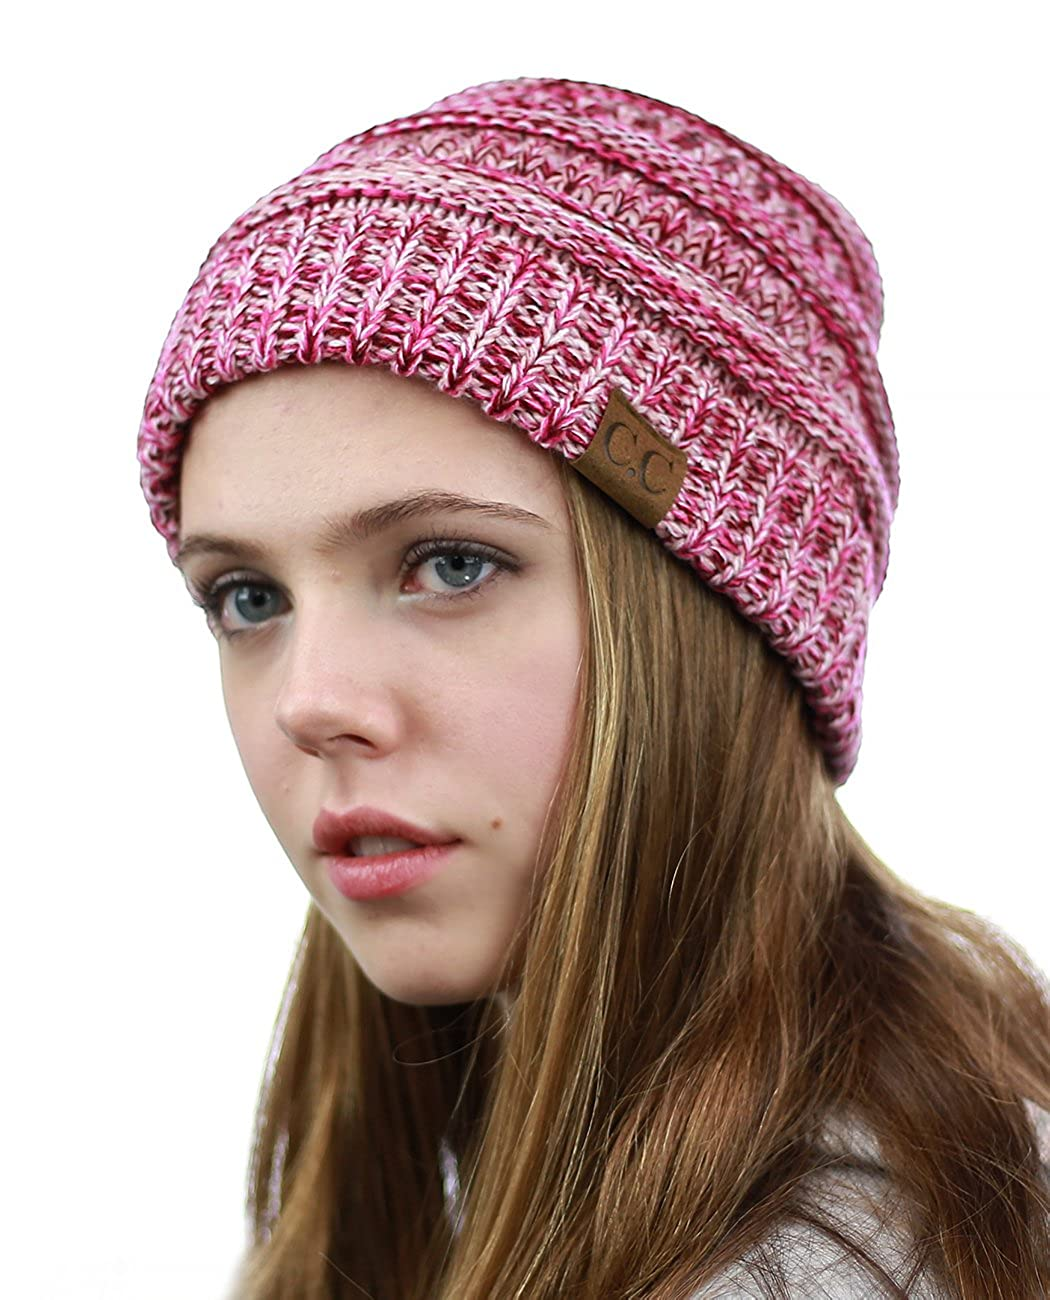 fba361486e3b35 NYFASHION101 Unisex Multicolor Warm Cable Knit Thick Slouch Beanie Cap, 3 Tone  Pink at Amazon Women's Clothing store: